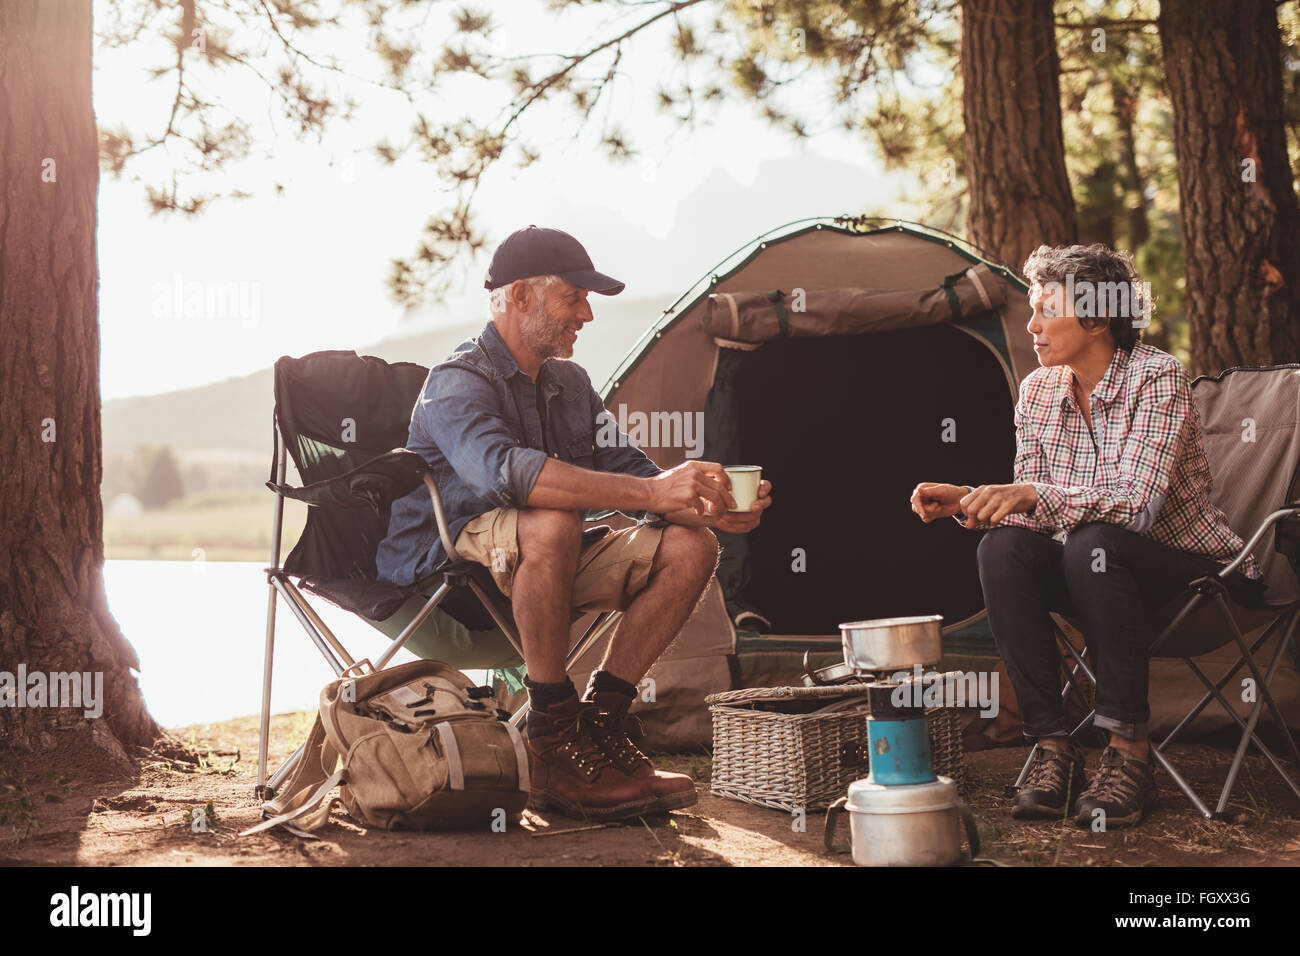 Portrait of happy mature campers enjoying coffee by the lake. Mature couple relaxing at their campsite. Stock Photo